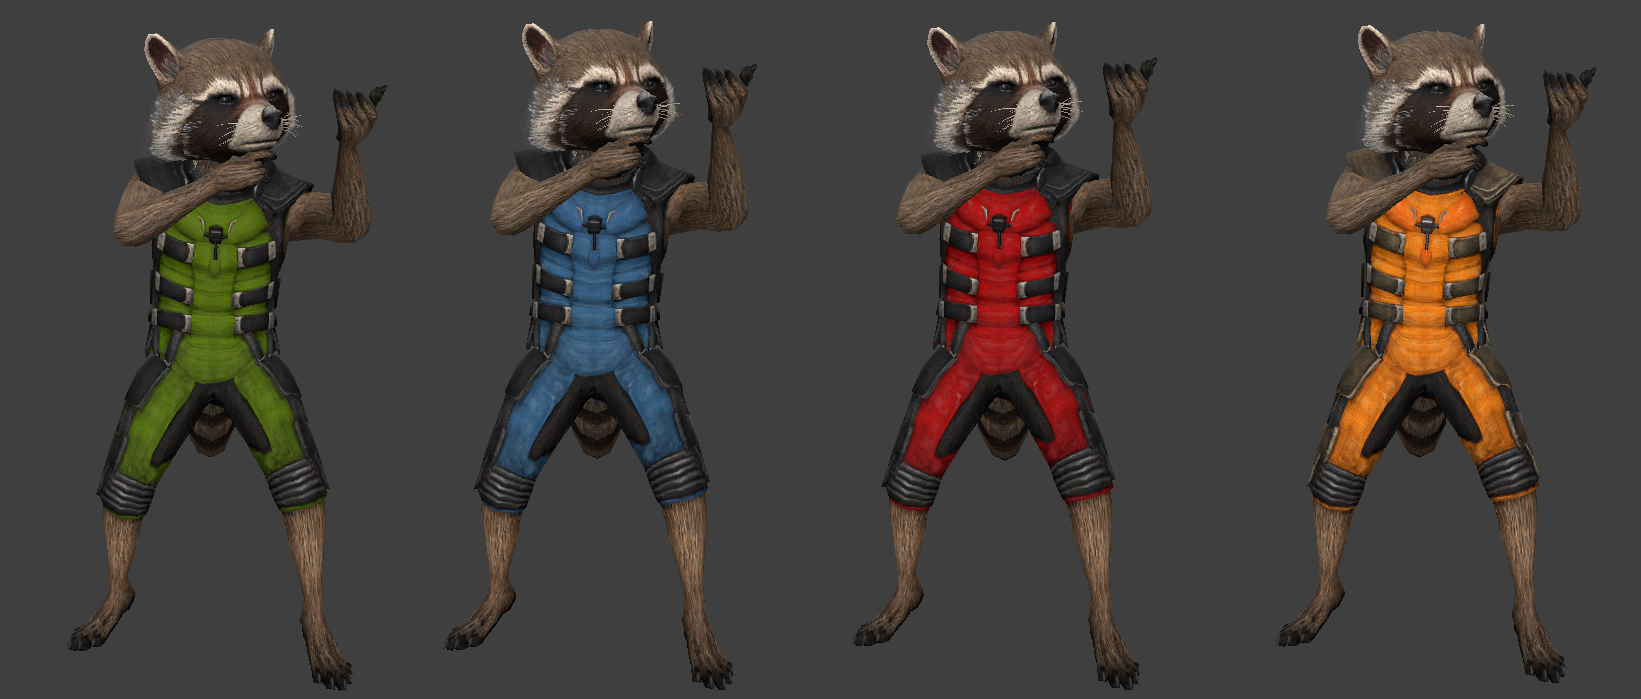 Rocket Raccoon Pack (Green, Blue, Red & Yellow)